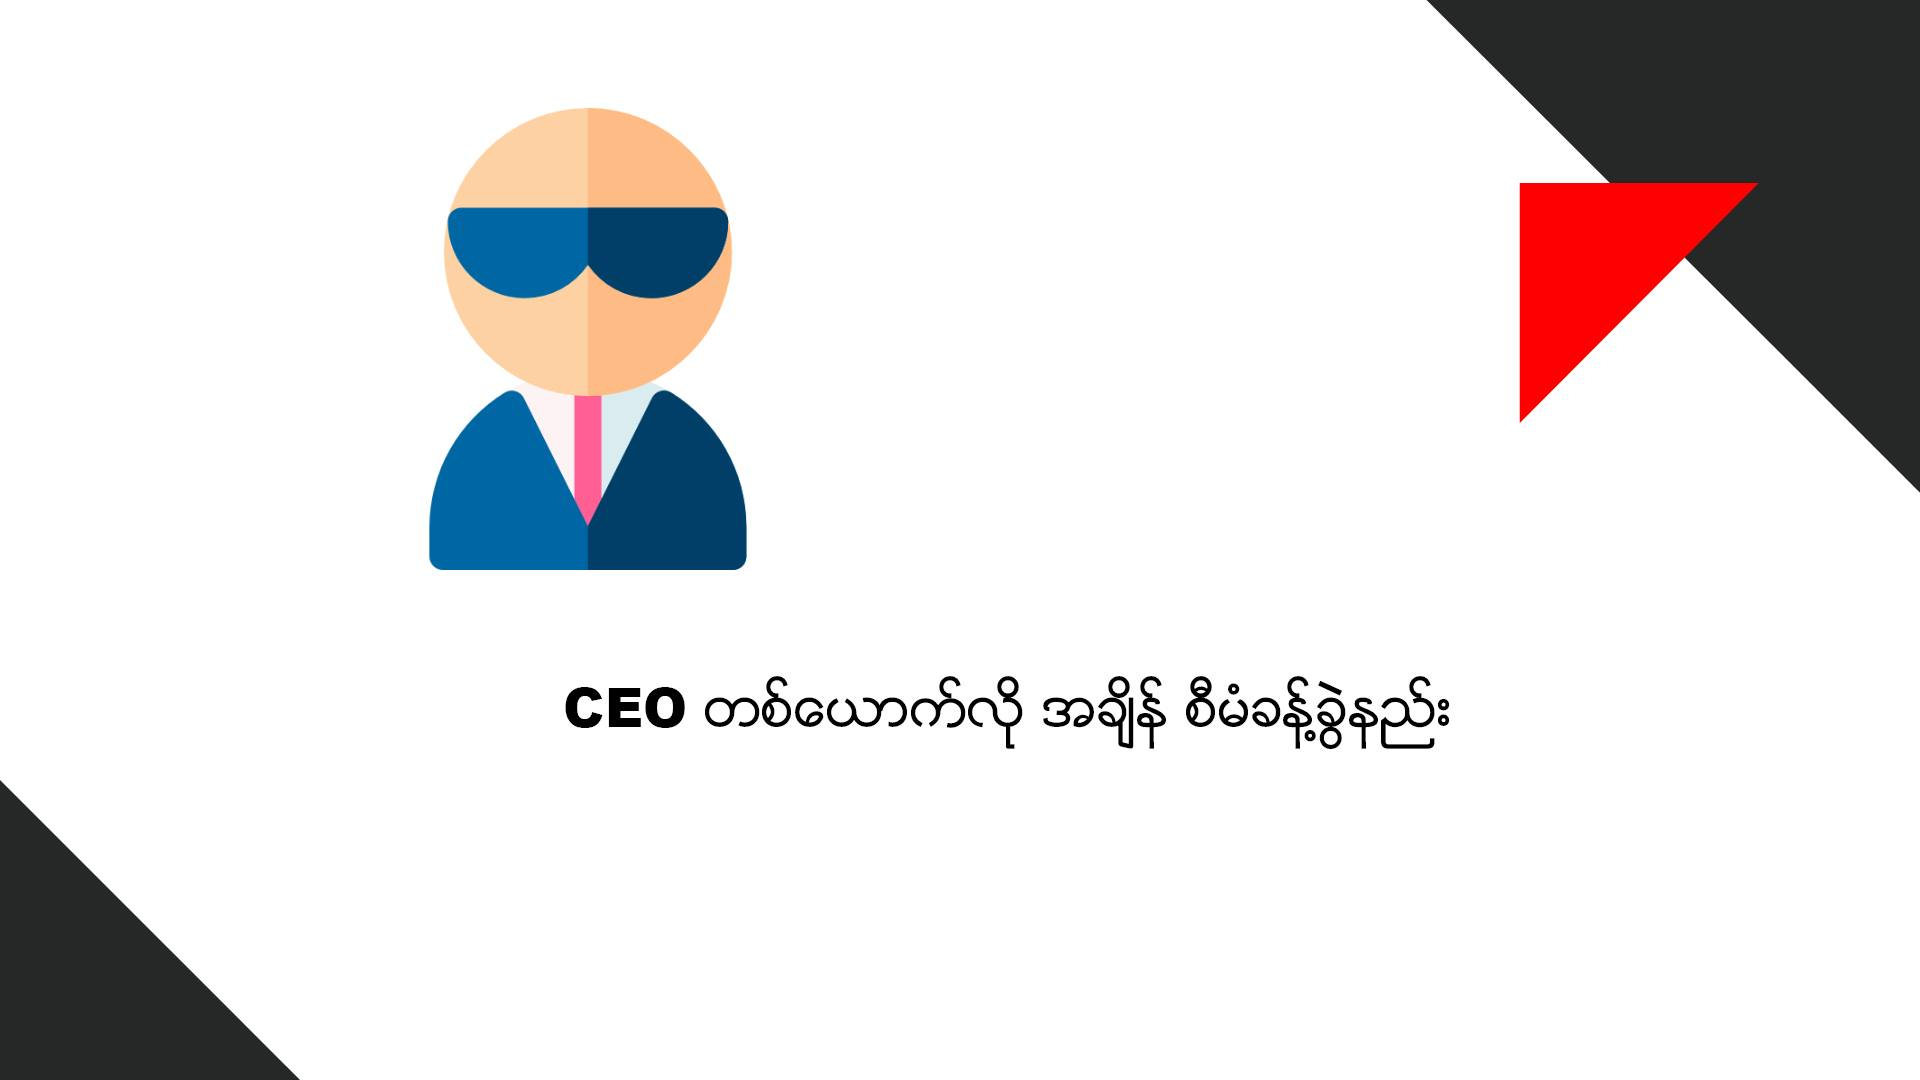 Manage Your Time Like a CEO | Read more blogs at New Day Jobs